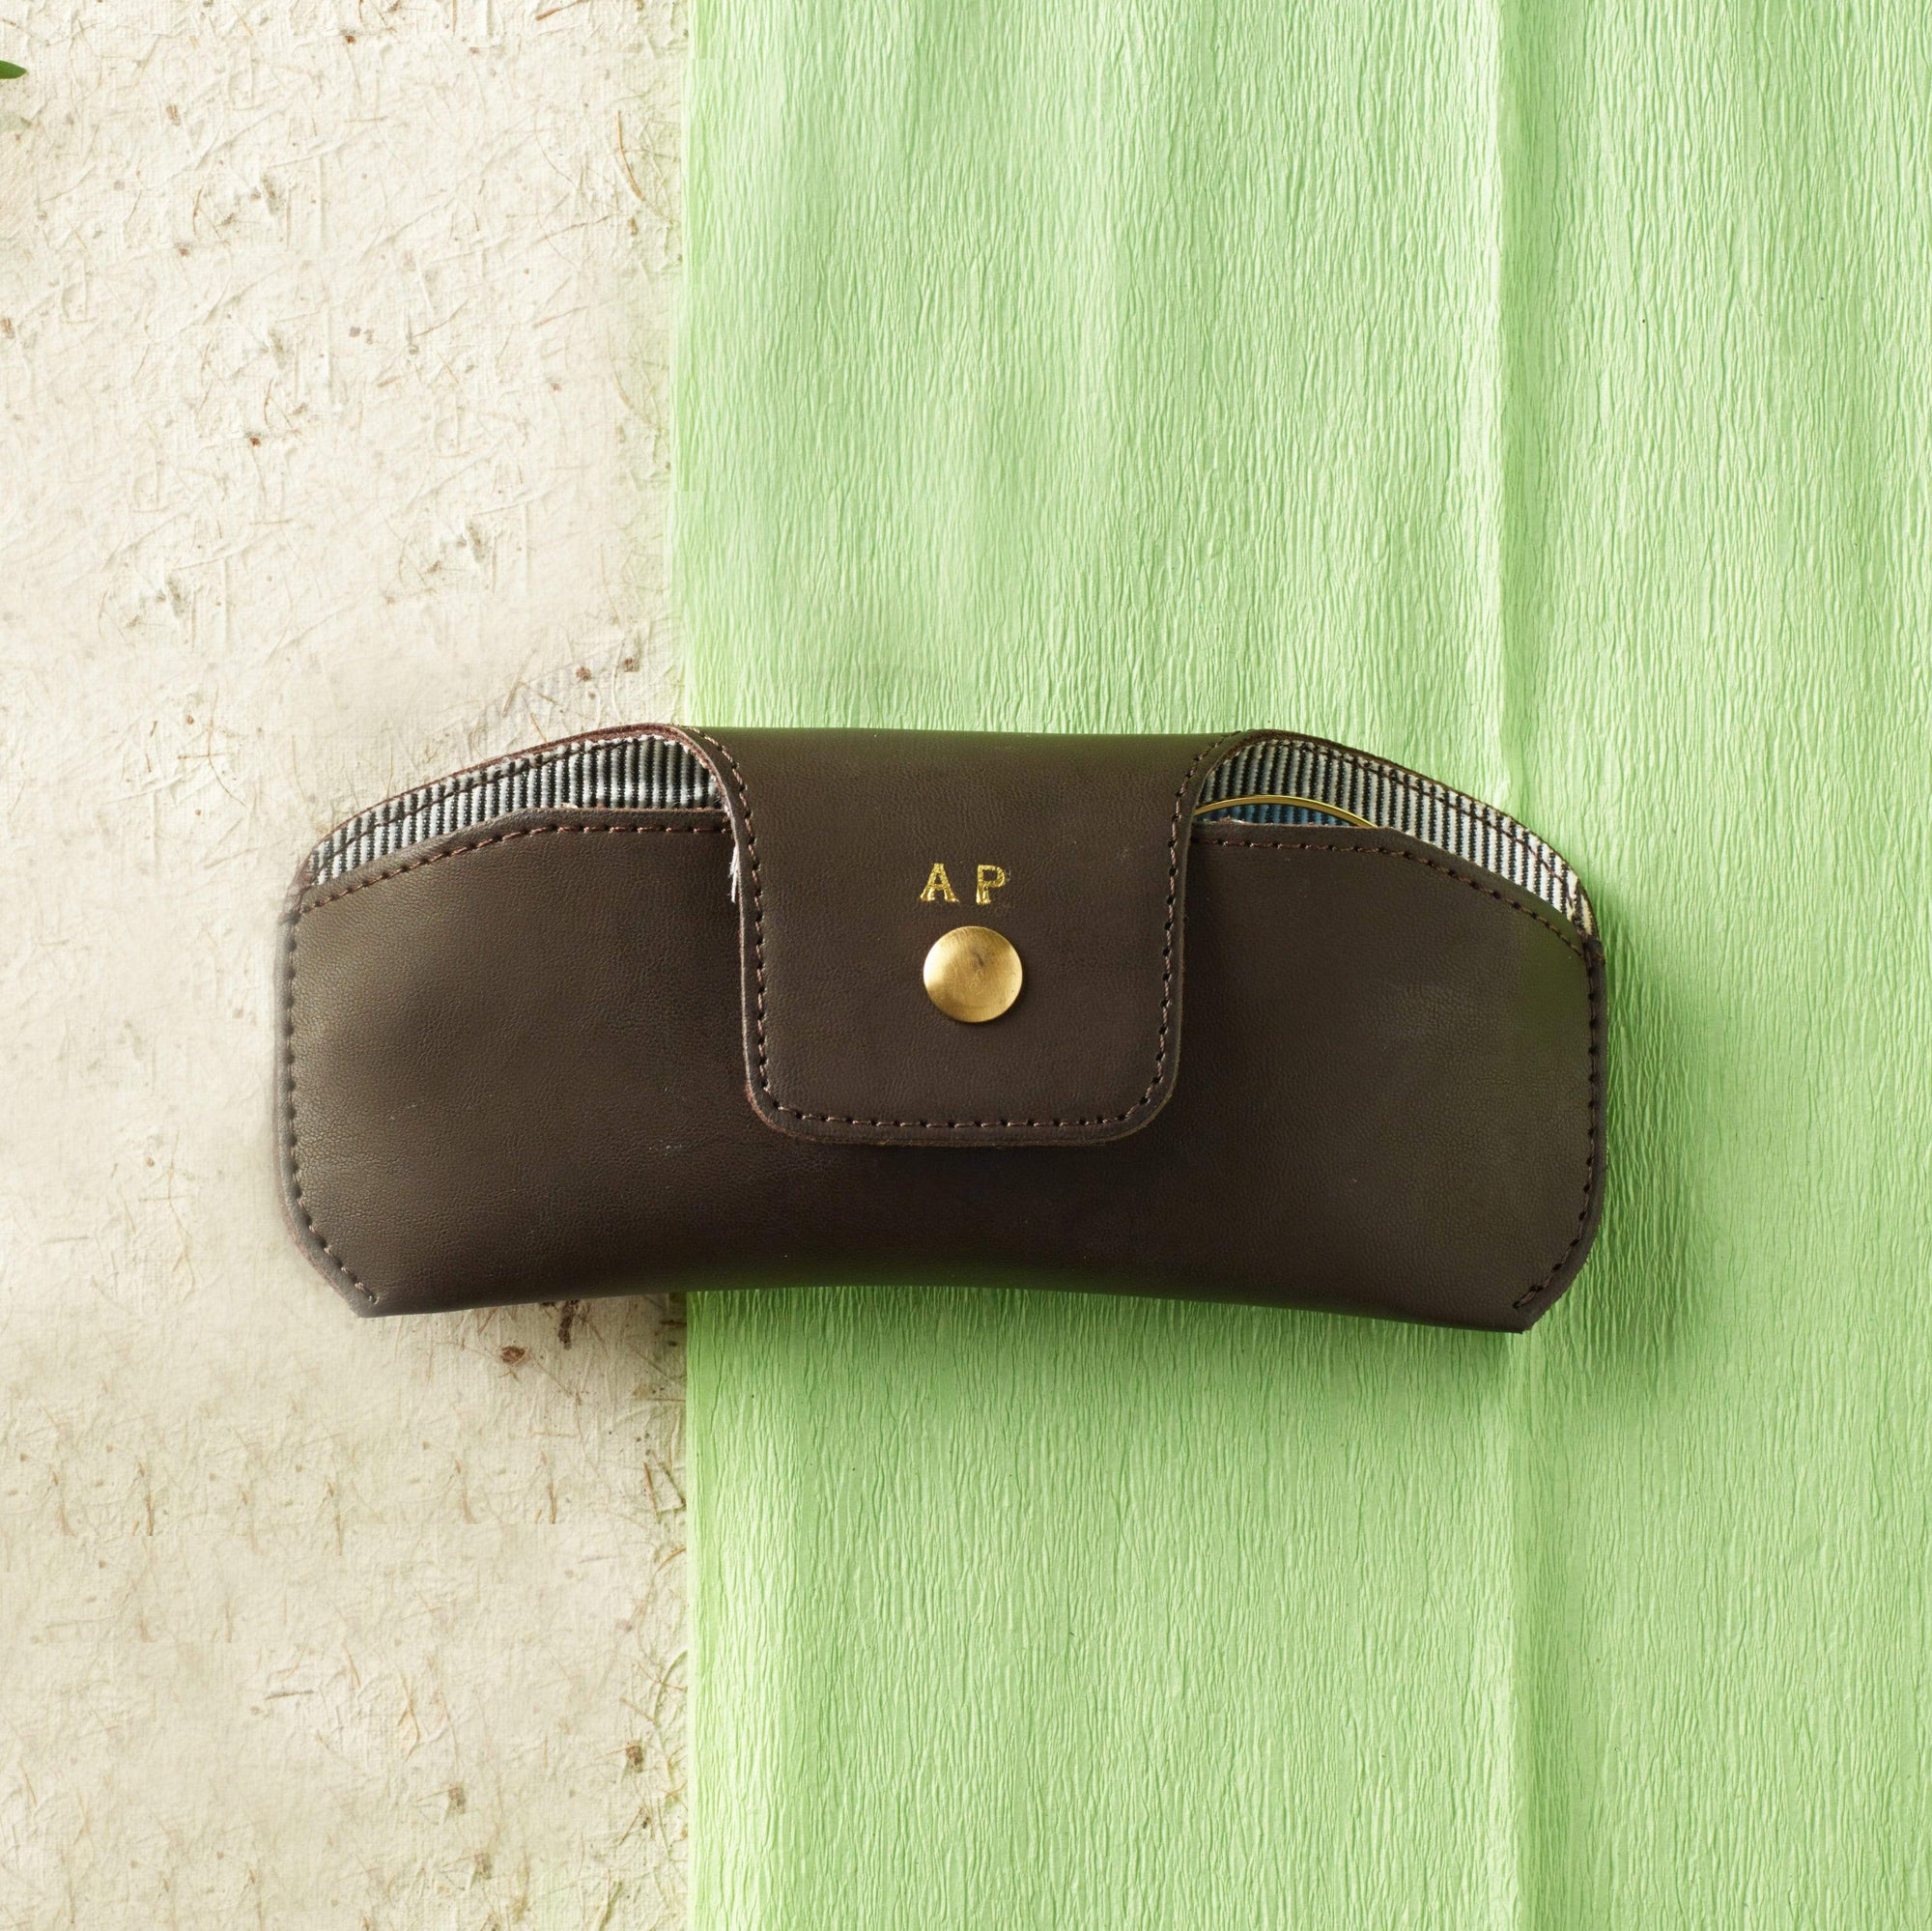 Personalised Eyewear Case - Chocolate Brown Eyewear Case